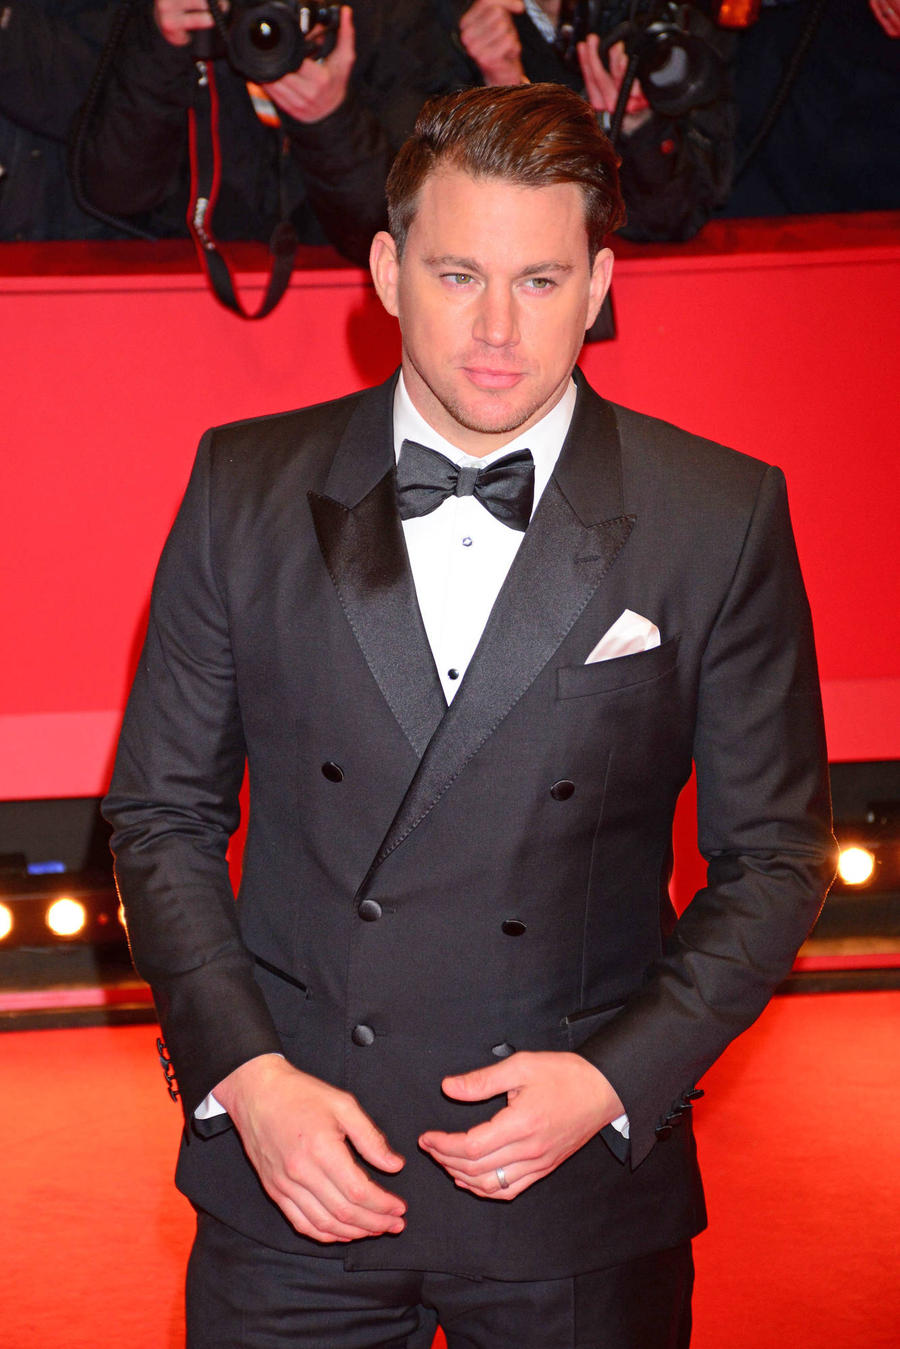 Channing Tatum Criticises Brock Turner Sentence